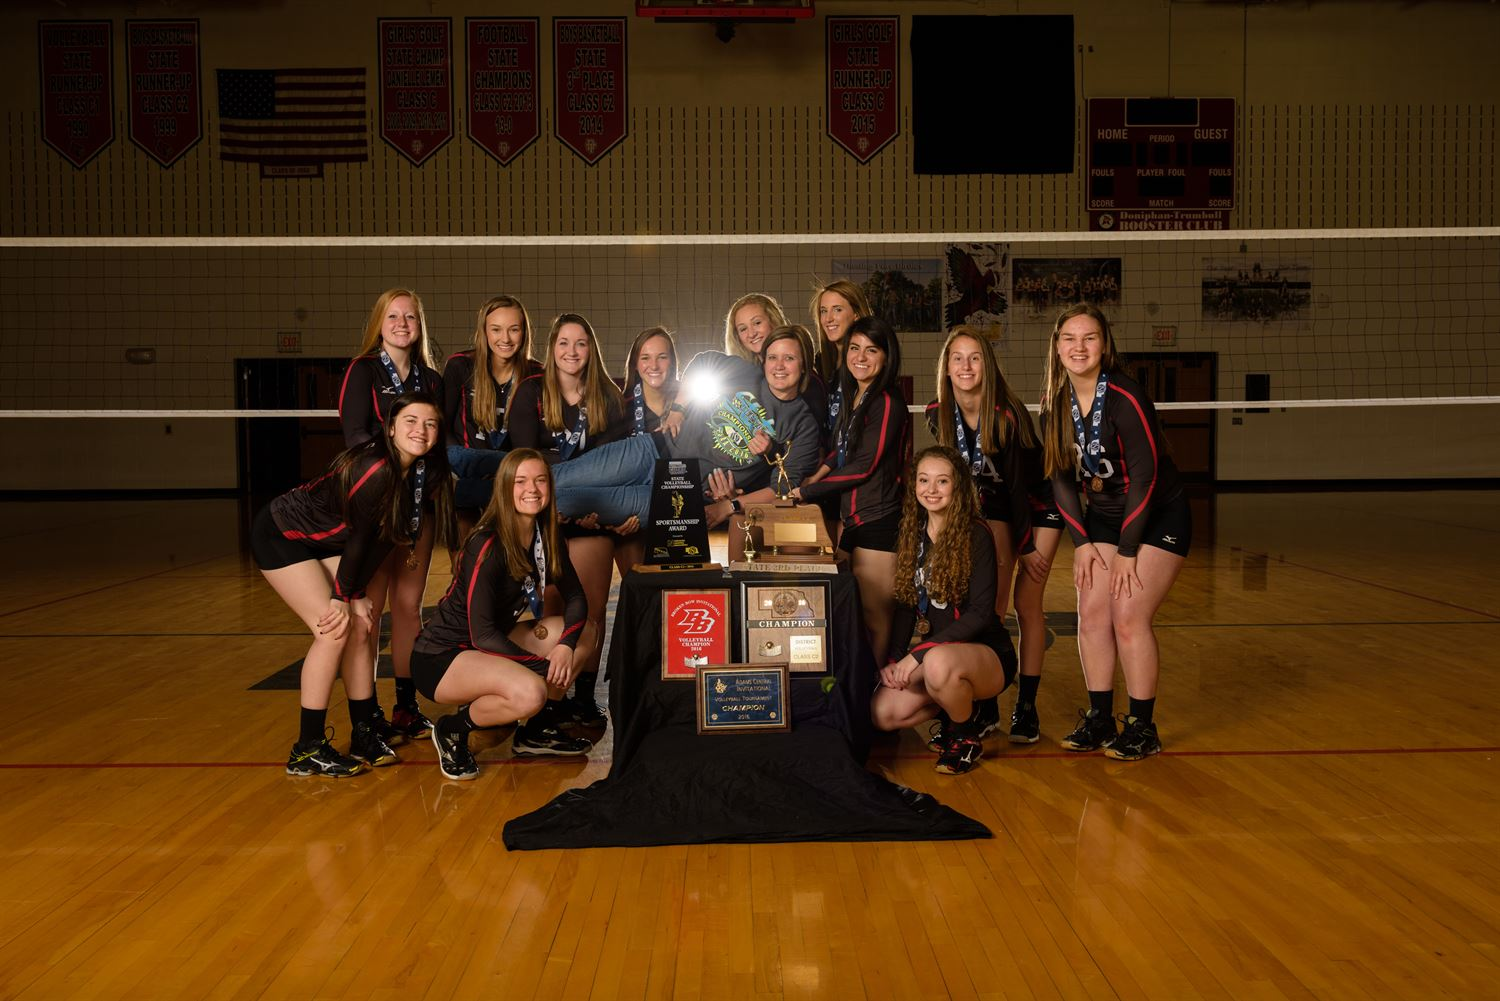 Doniphan-Trumbull High School - Girls Varsity Volleyball